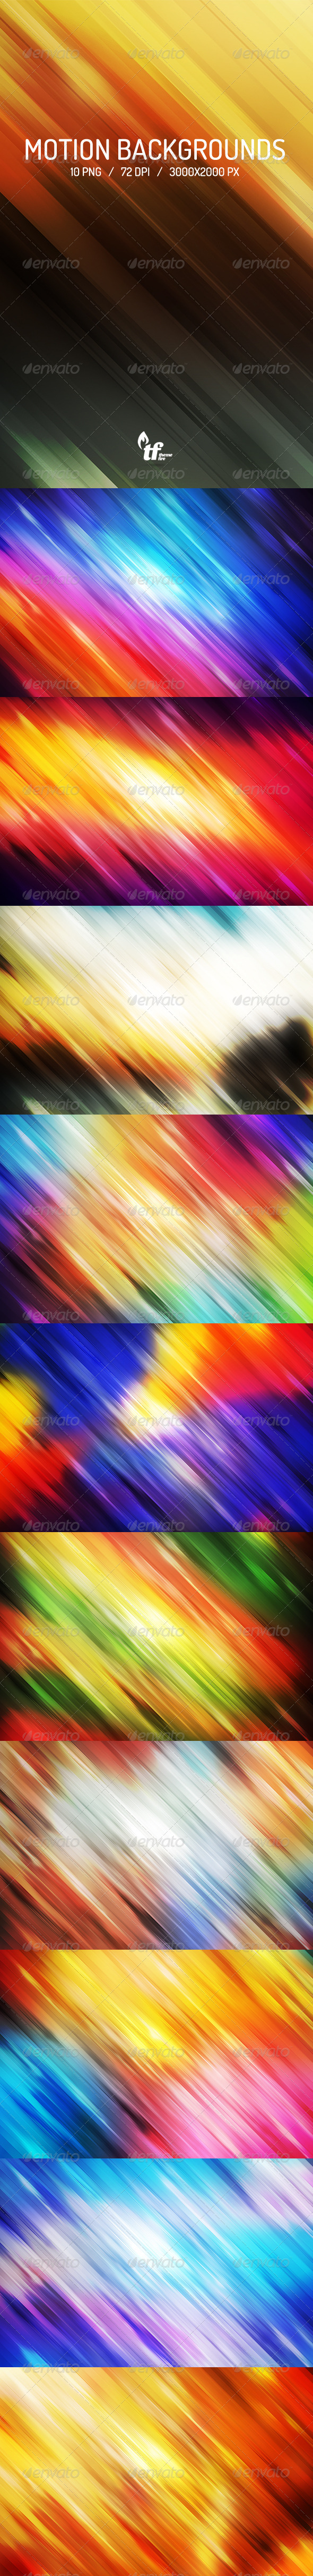 GraphicRiver Motion Backgrounds 7386777